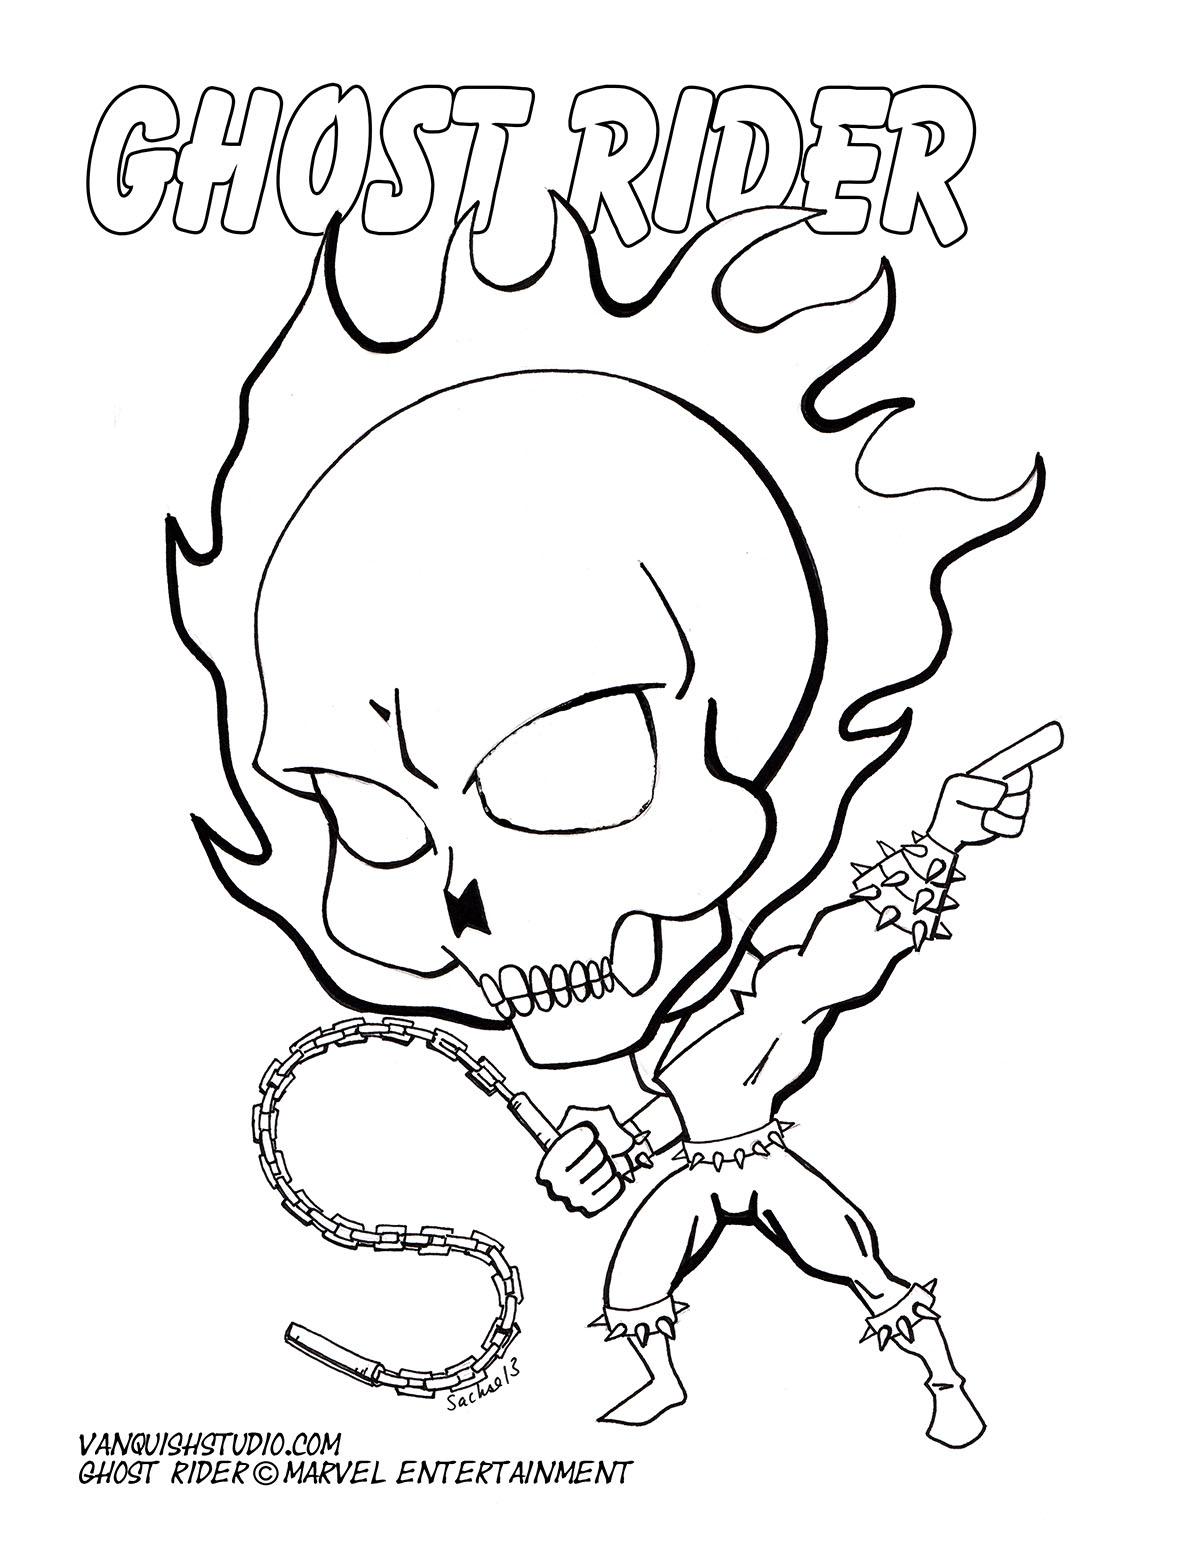 ghost rider free coloring pages - photo#35